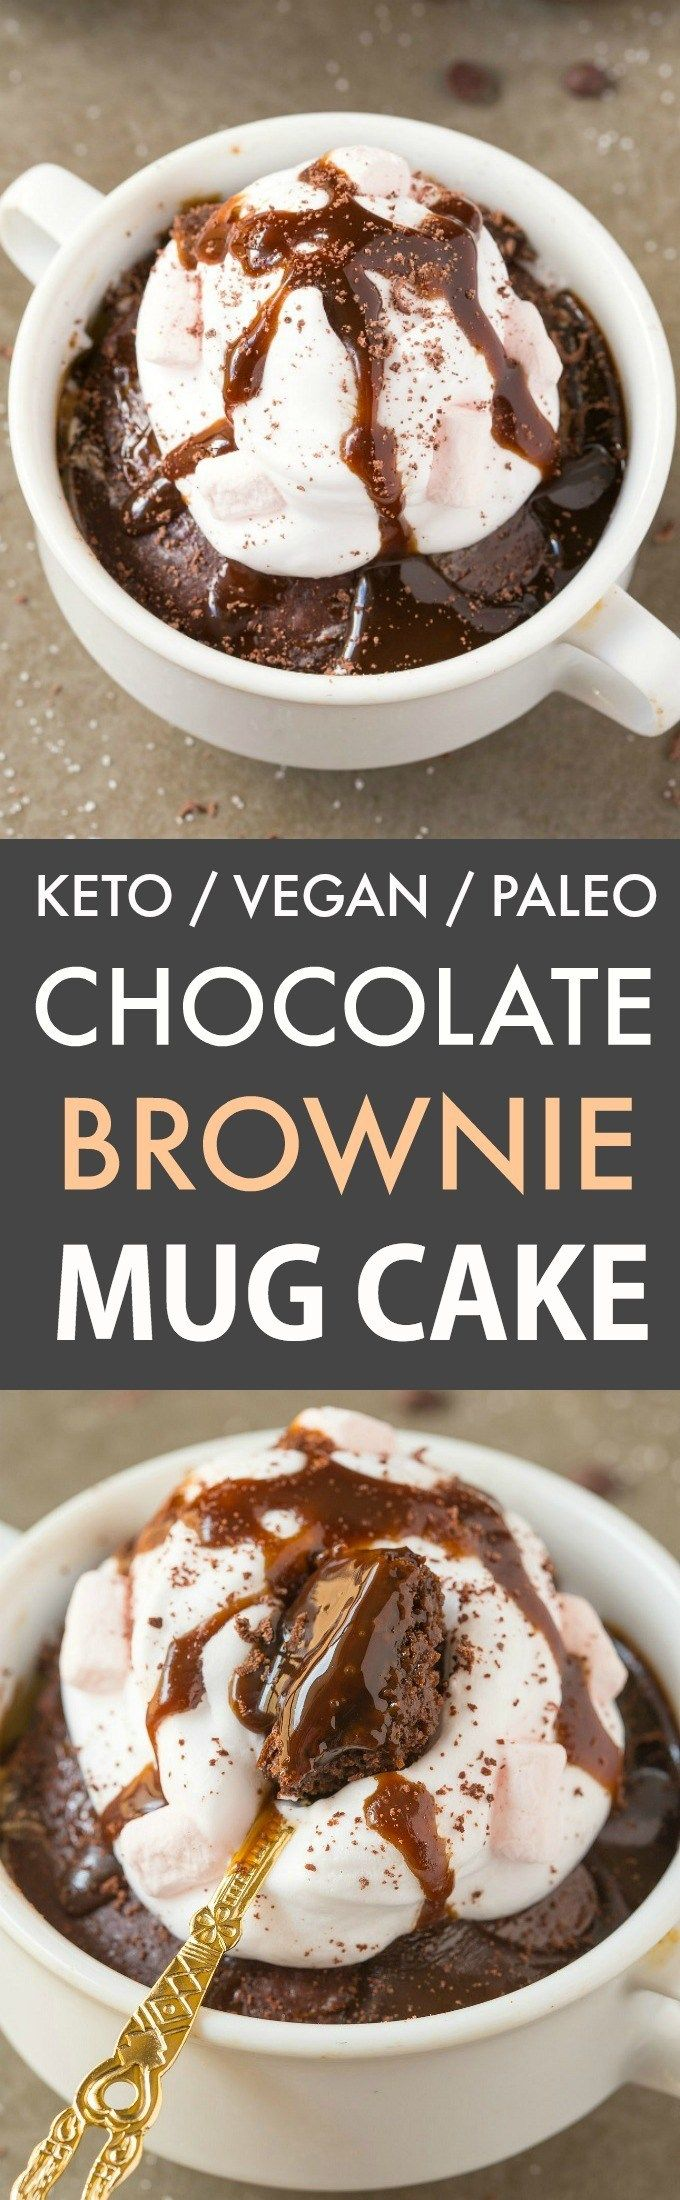 This keto chocolate brownie mug cake is the BEST vegan and ...